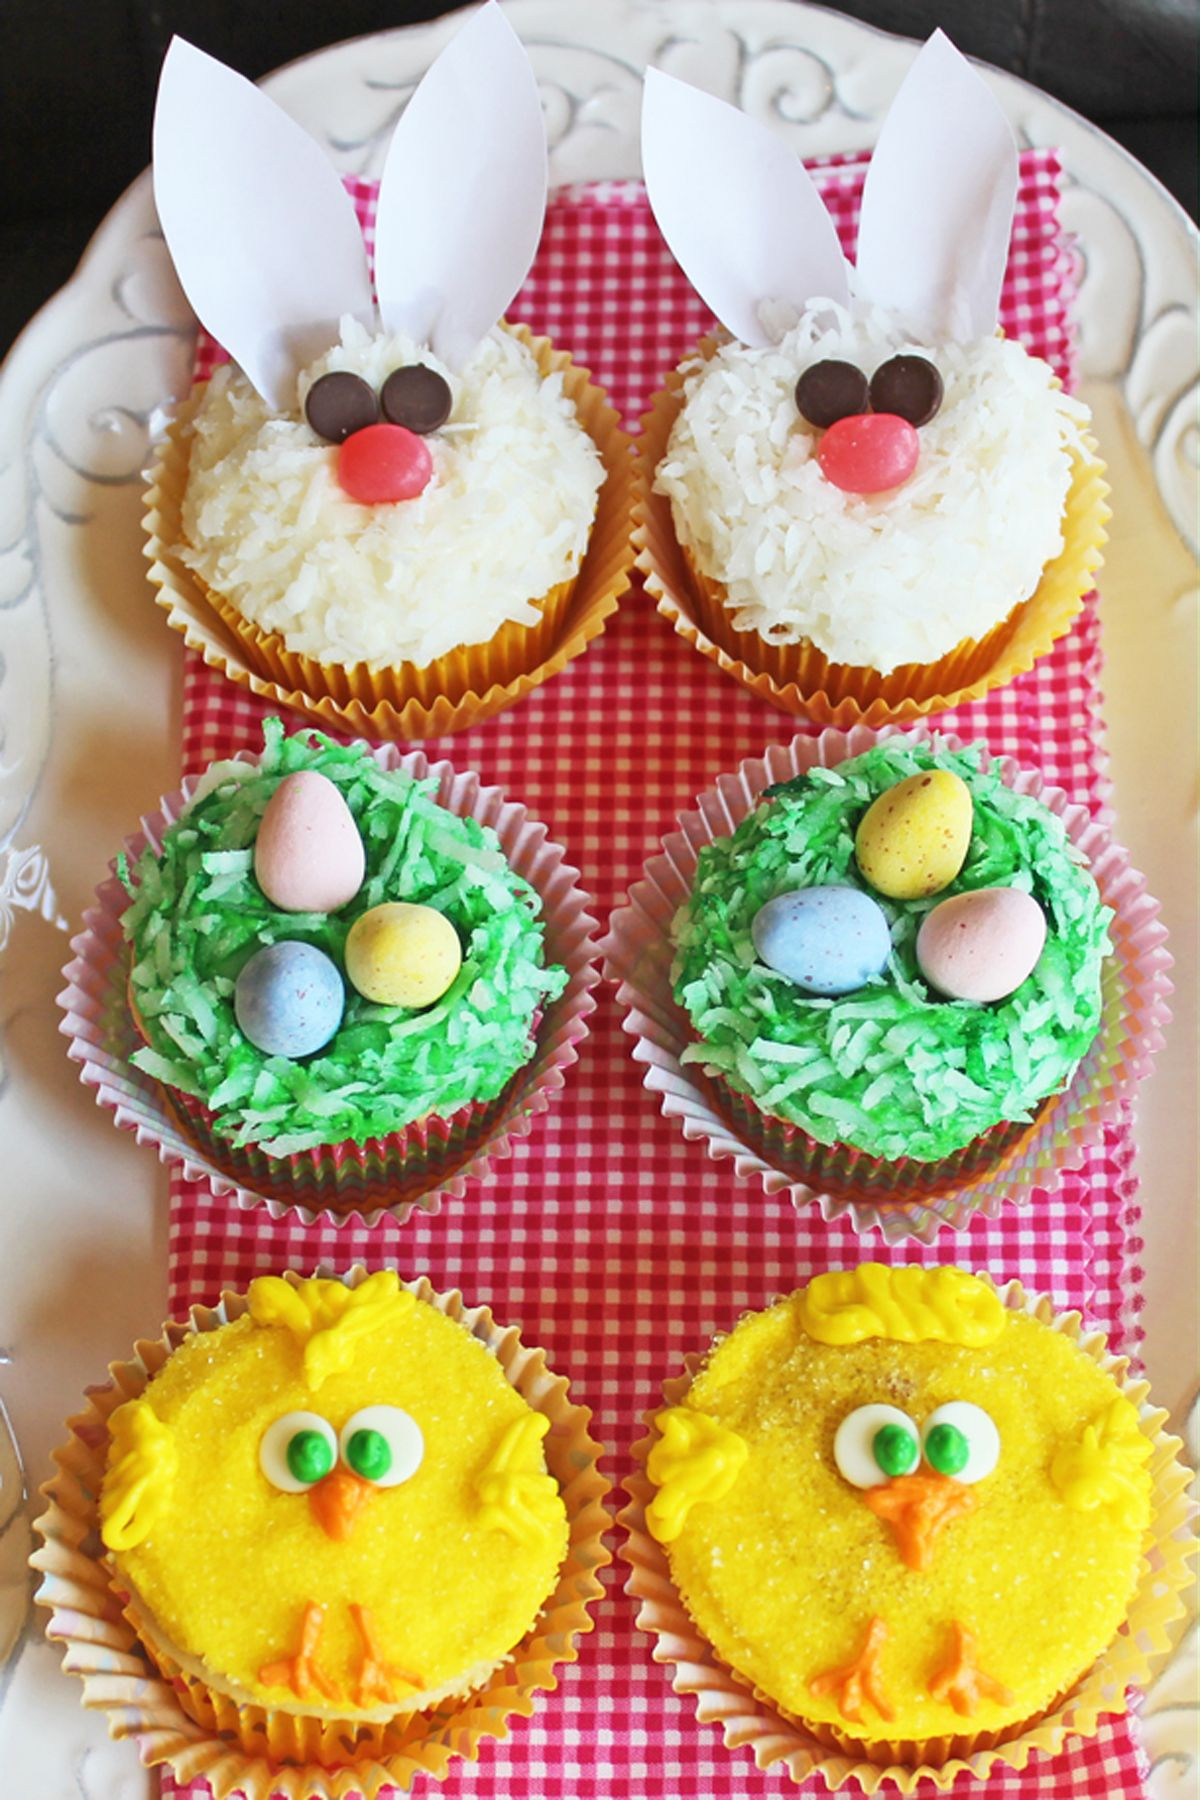 Watch How to Make Easter Cupcakes video